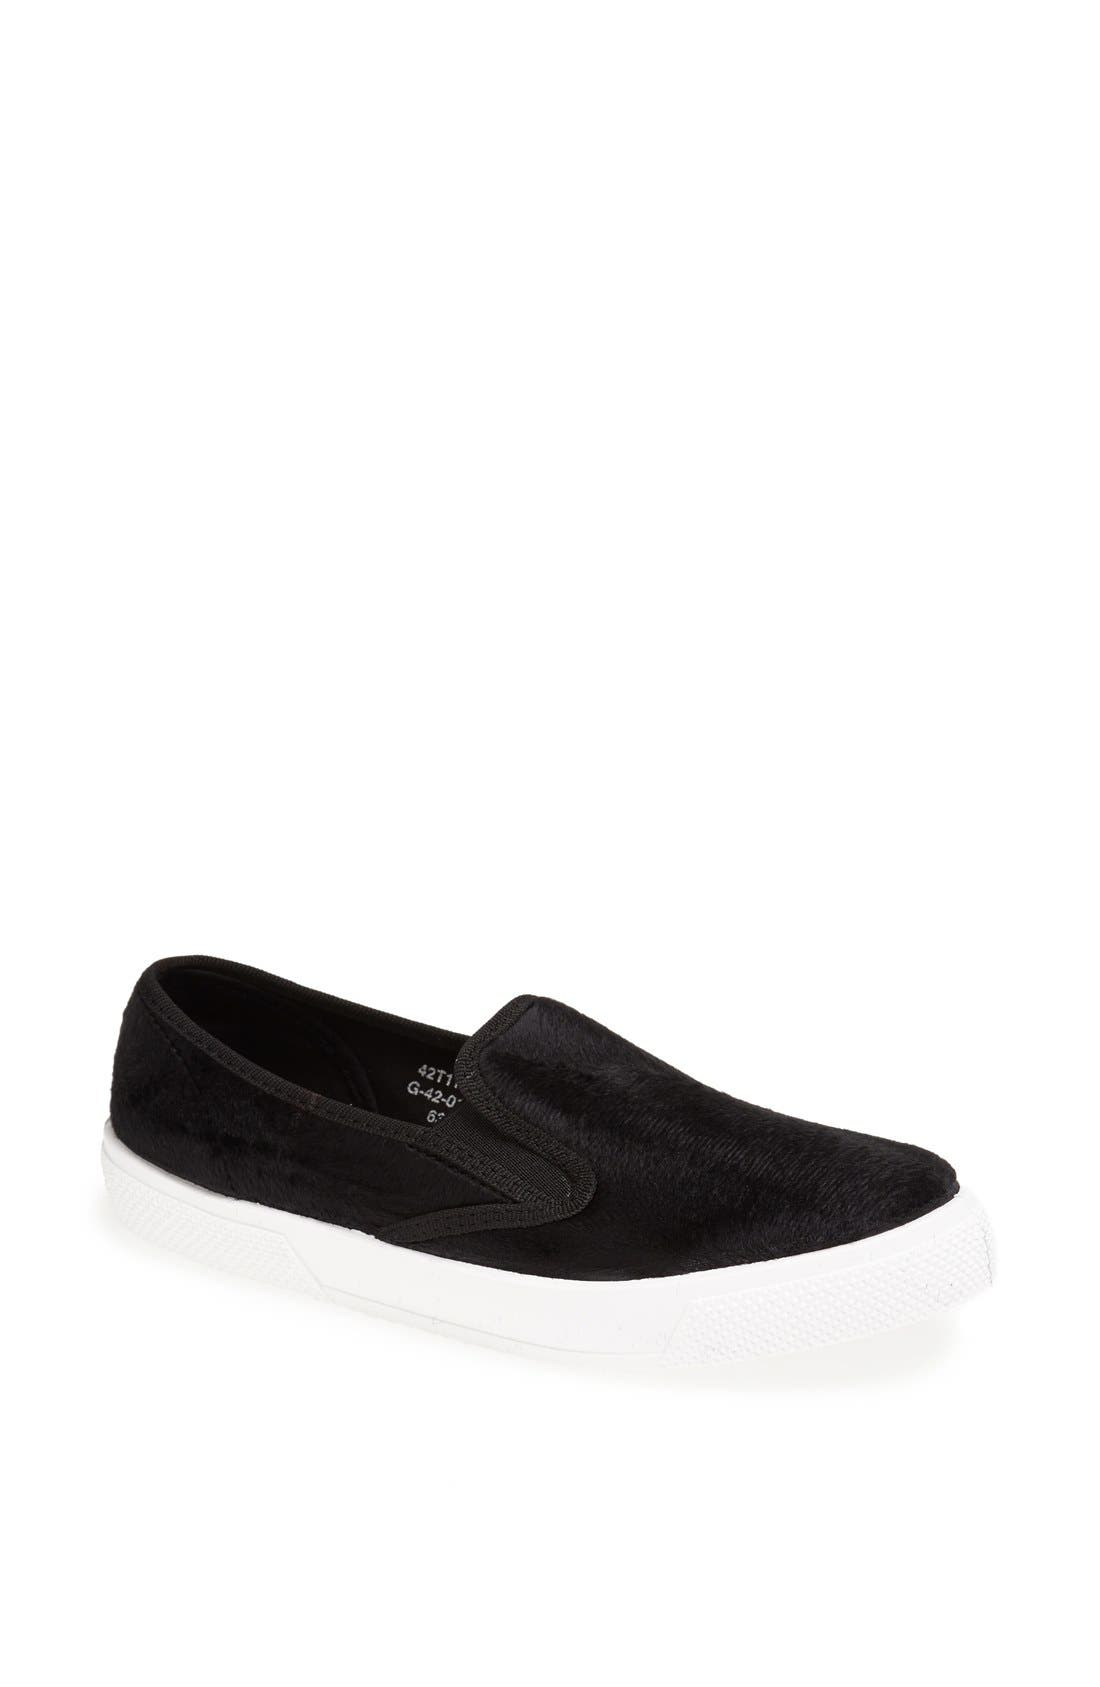 Alternate Image 1 Selected - Topshop 'Tika 2' Slip On Sneaker